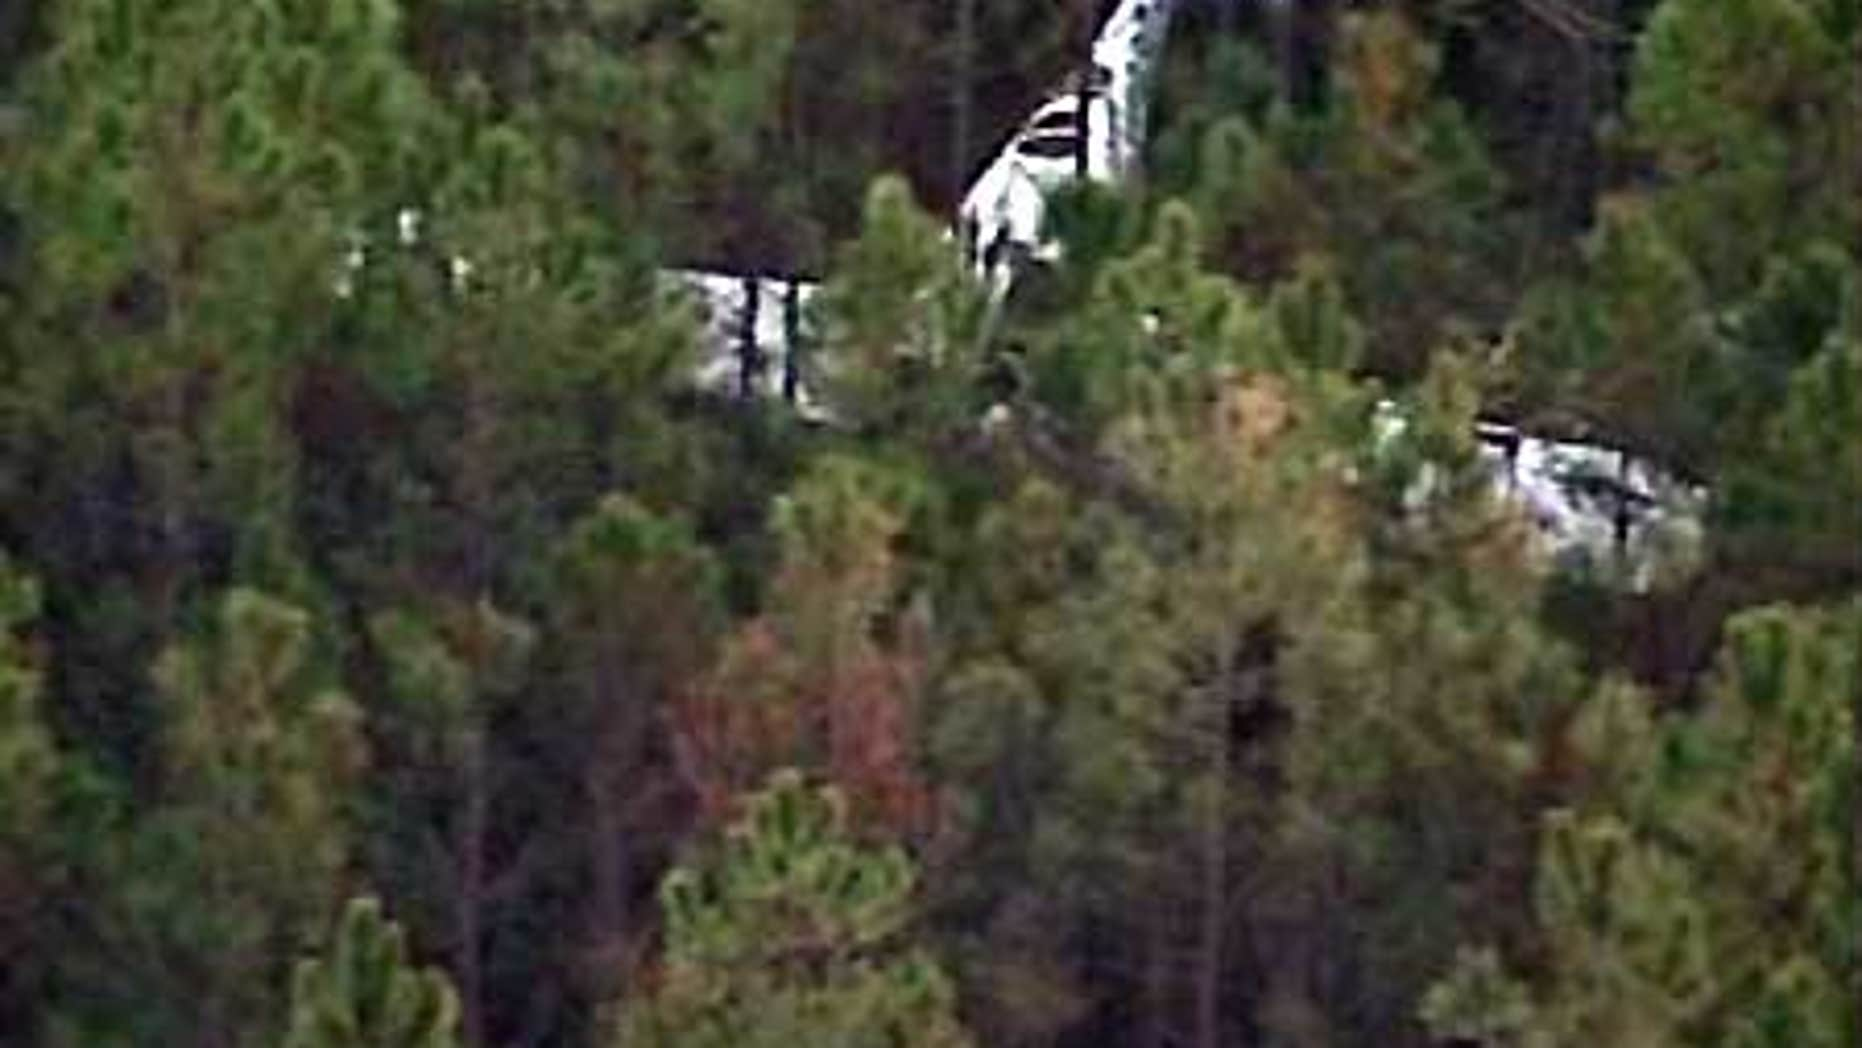 Feb. 18: This aerial image shows the site of a plane crash in Volusia County, Fla.